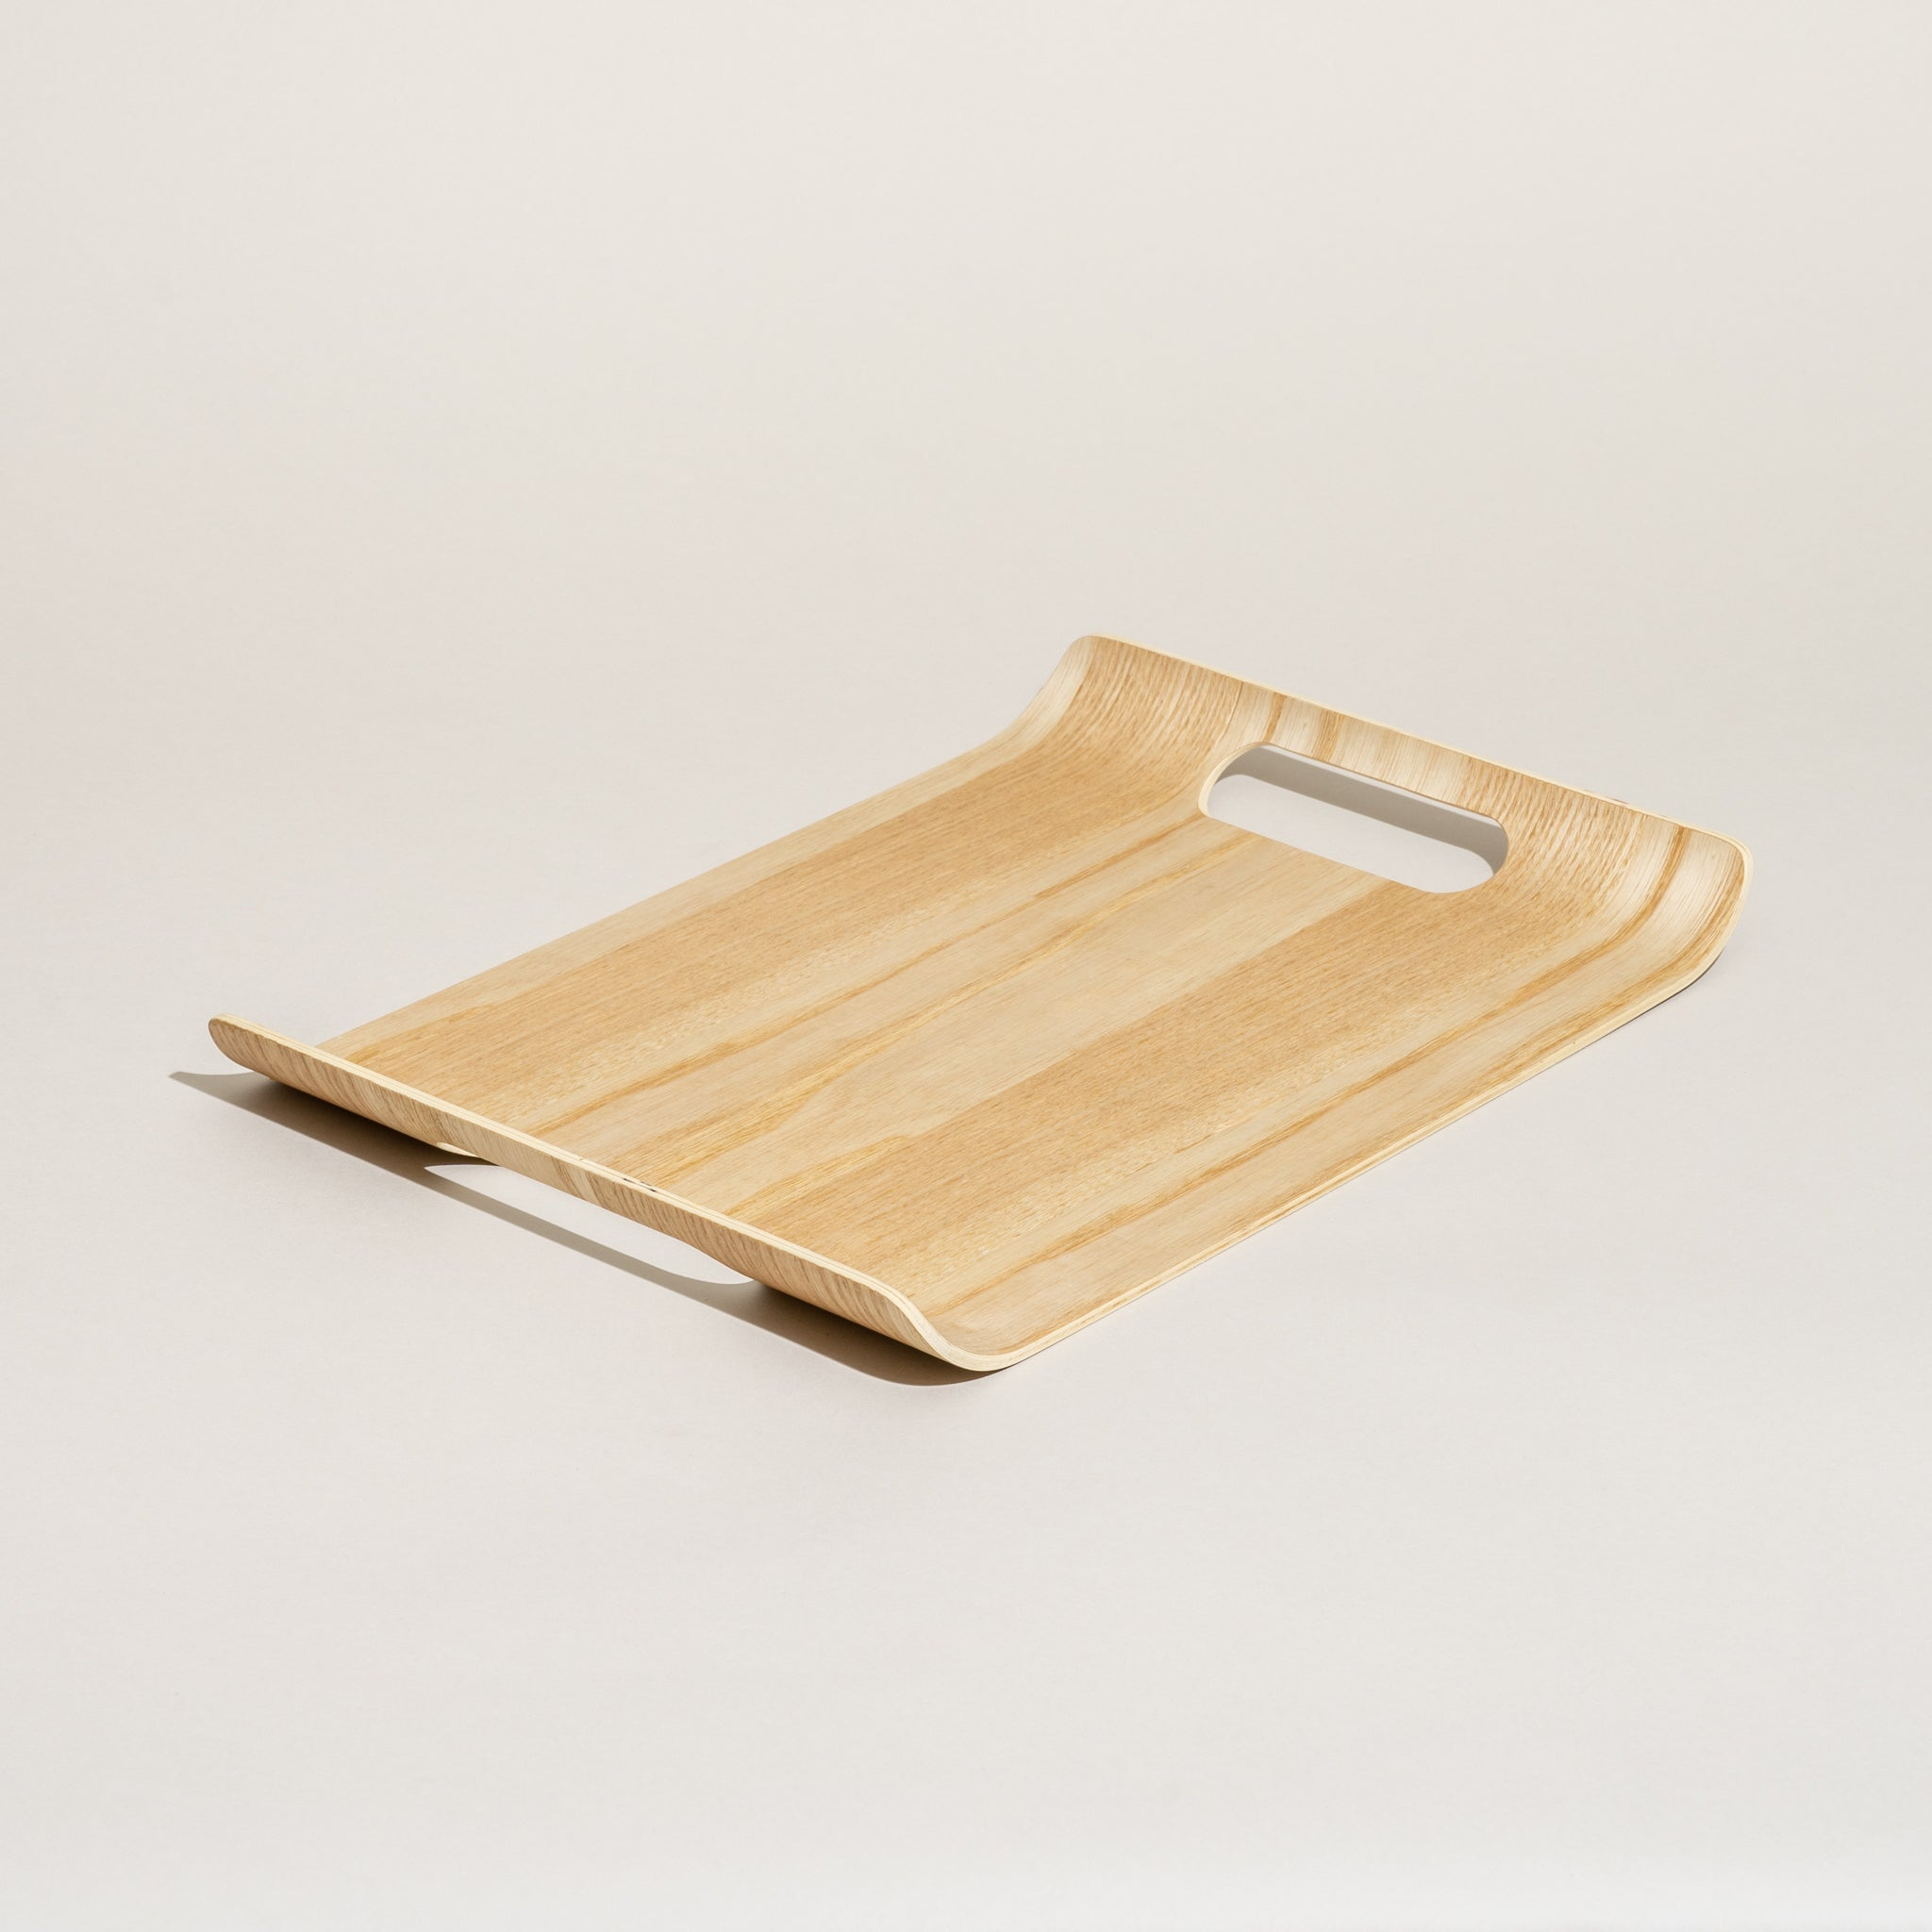 Wilo Serving Tray